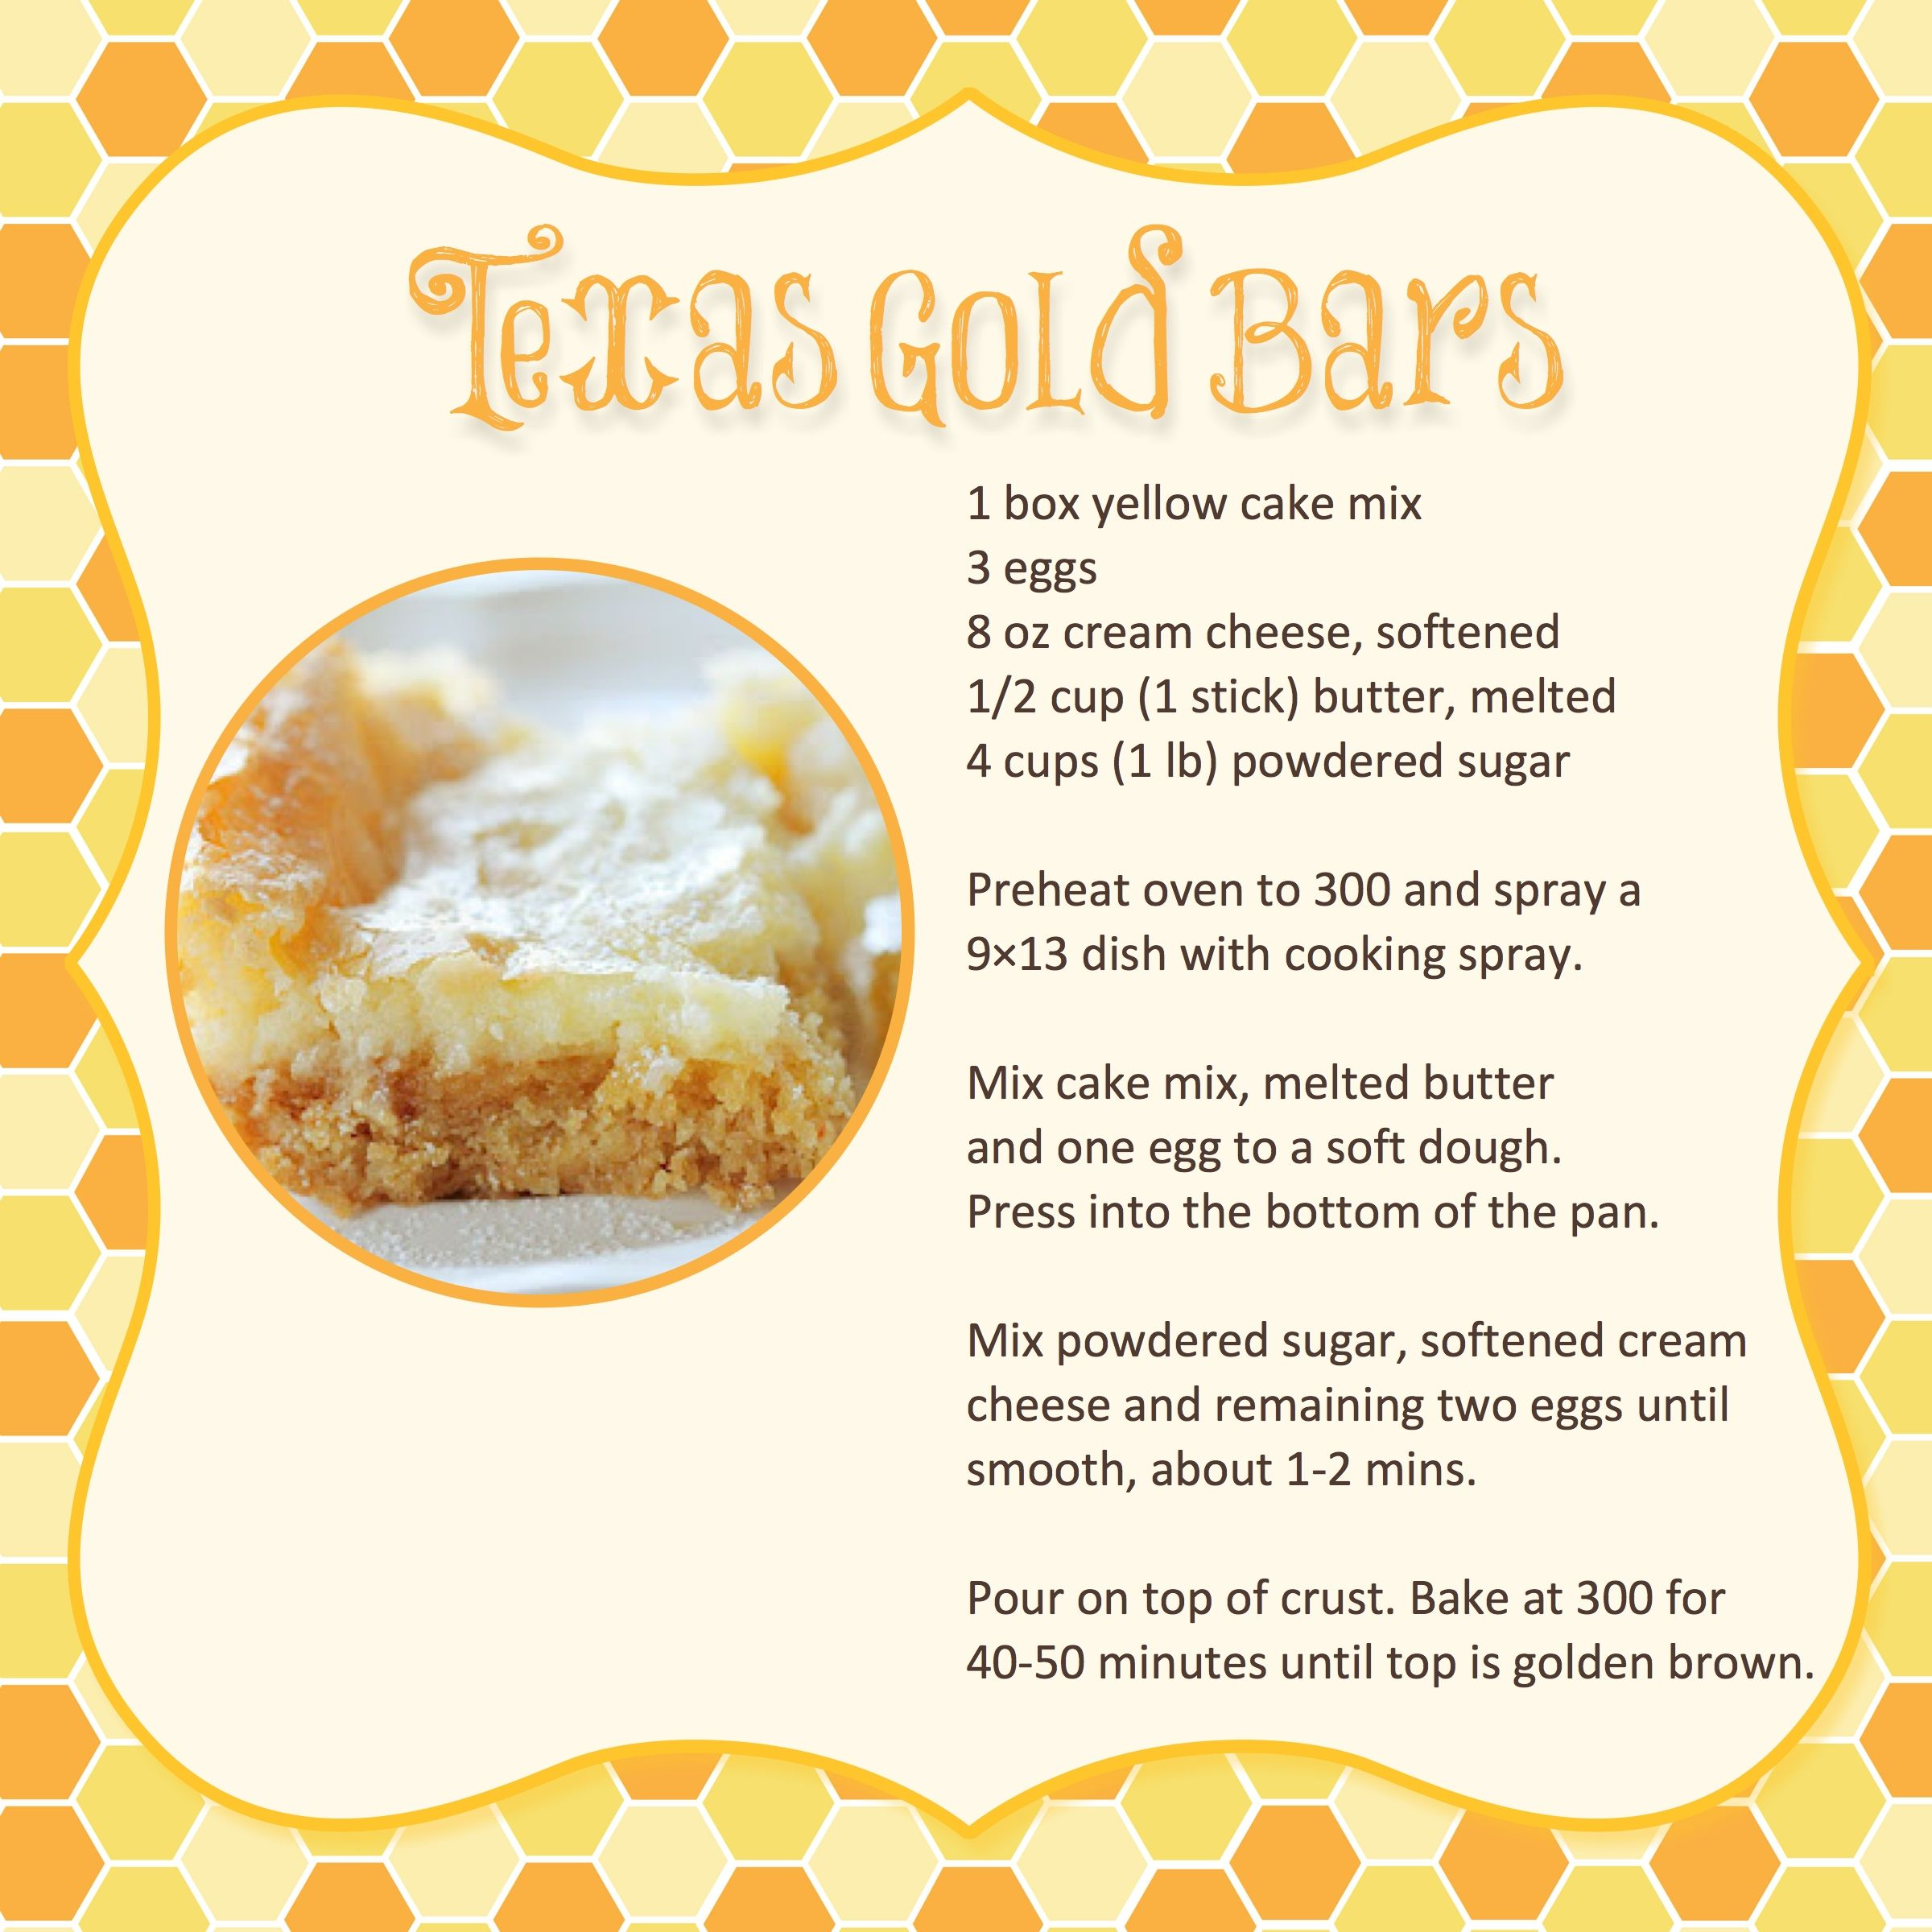 """Great easy dessert recipe for Girls Night Out Gatherings or Covered Dish Events...AND it's printable too.  Just print the image and trim to find an 8"""" x 8"""" page perfect for a recipe book formed by using an empty scrapbook."""